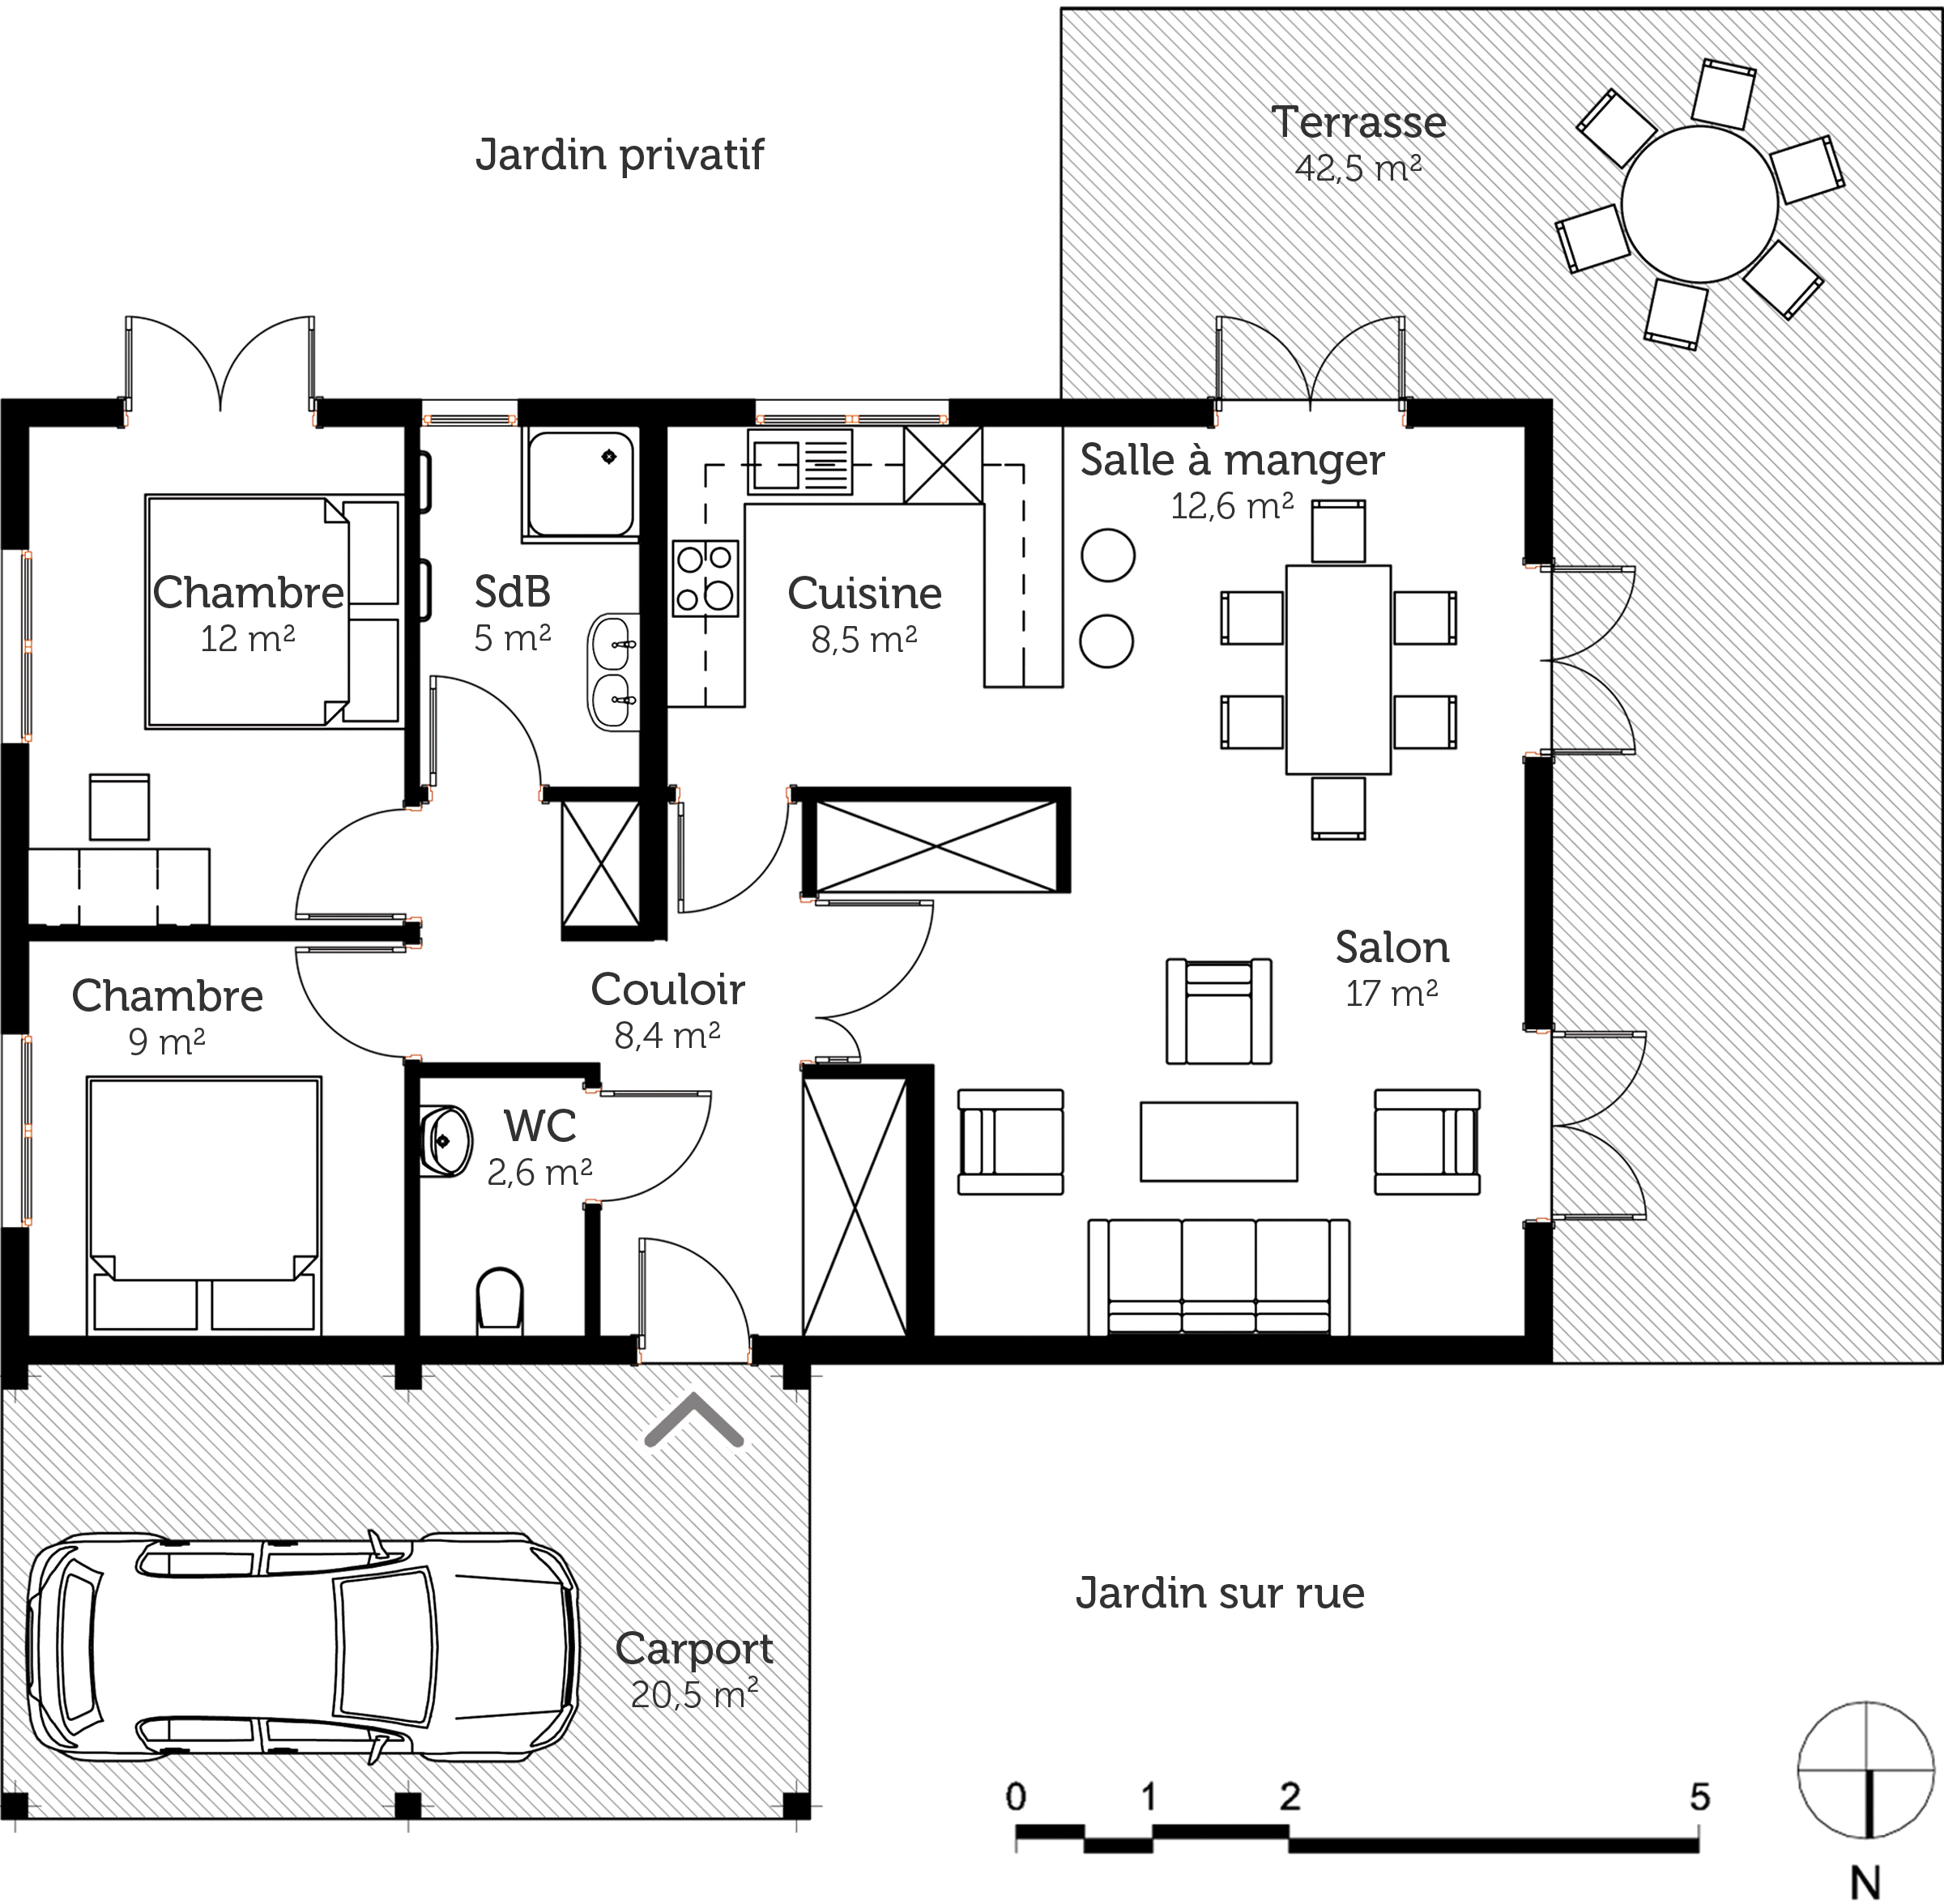 Plan maison de plain pied 80 m ooreka for Plan de maison en plain pied